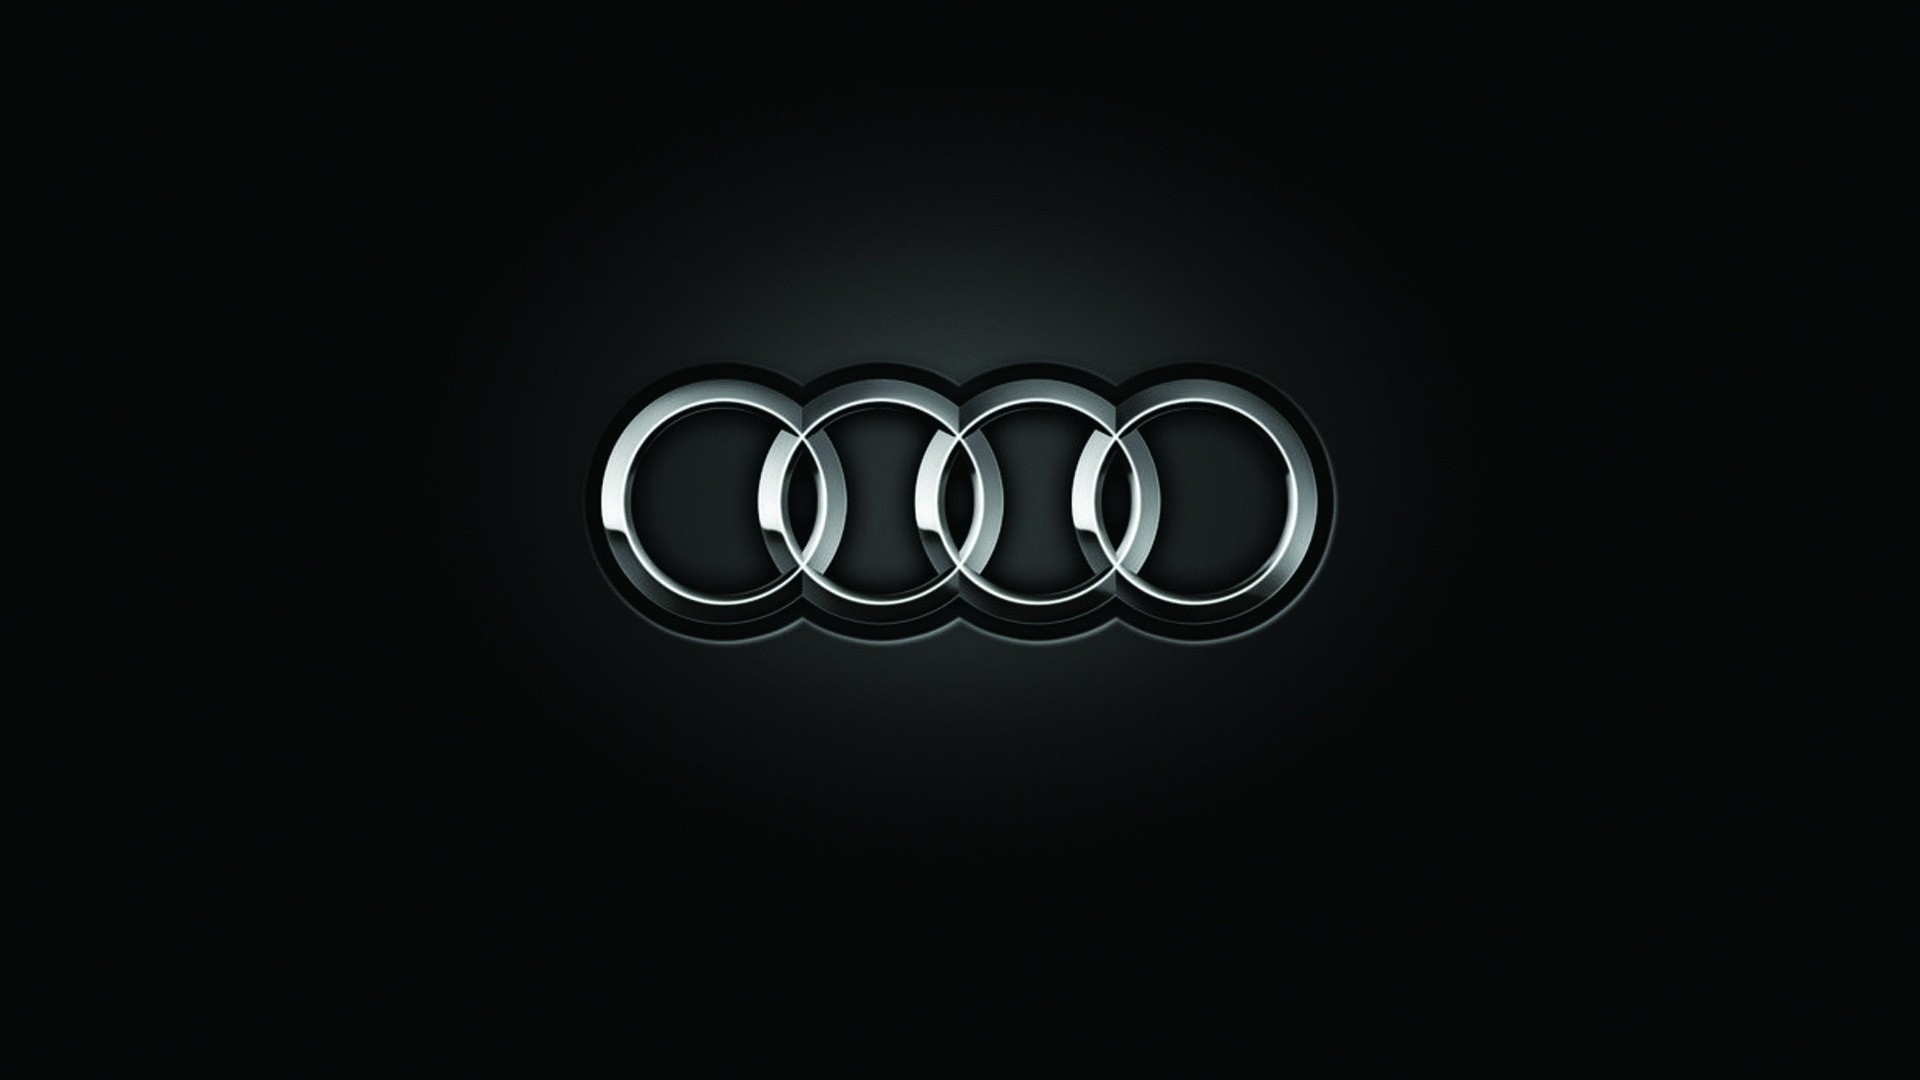 Hd Wallpapers Of Girls And Cars Audi Hd Logo 4k Wallpapers Images Backgrounds Photos